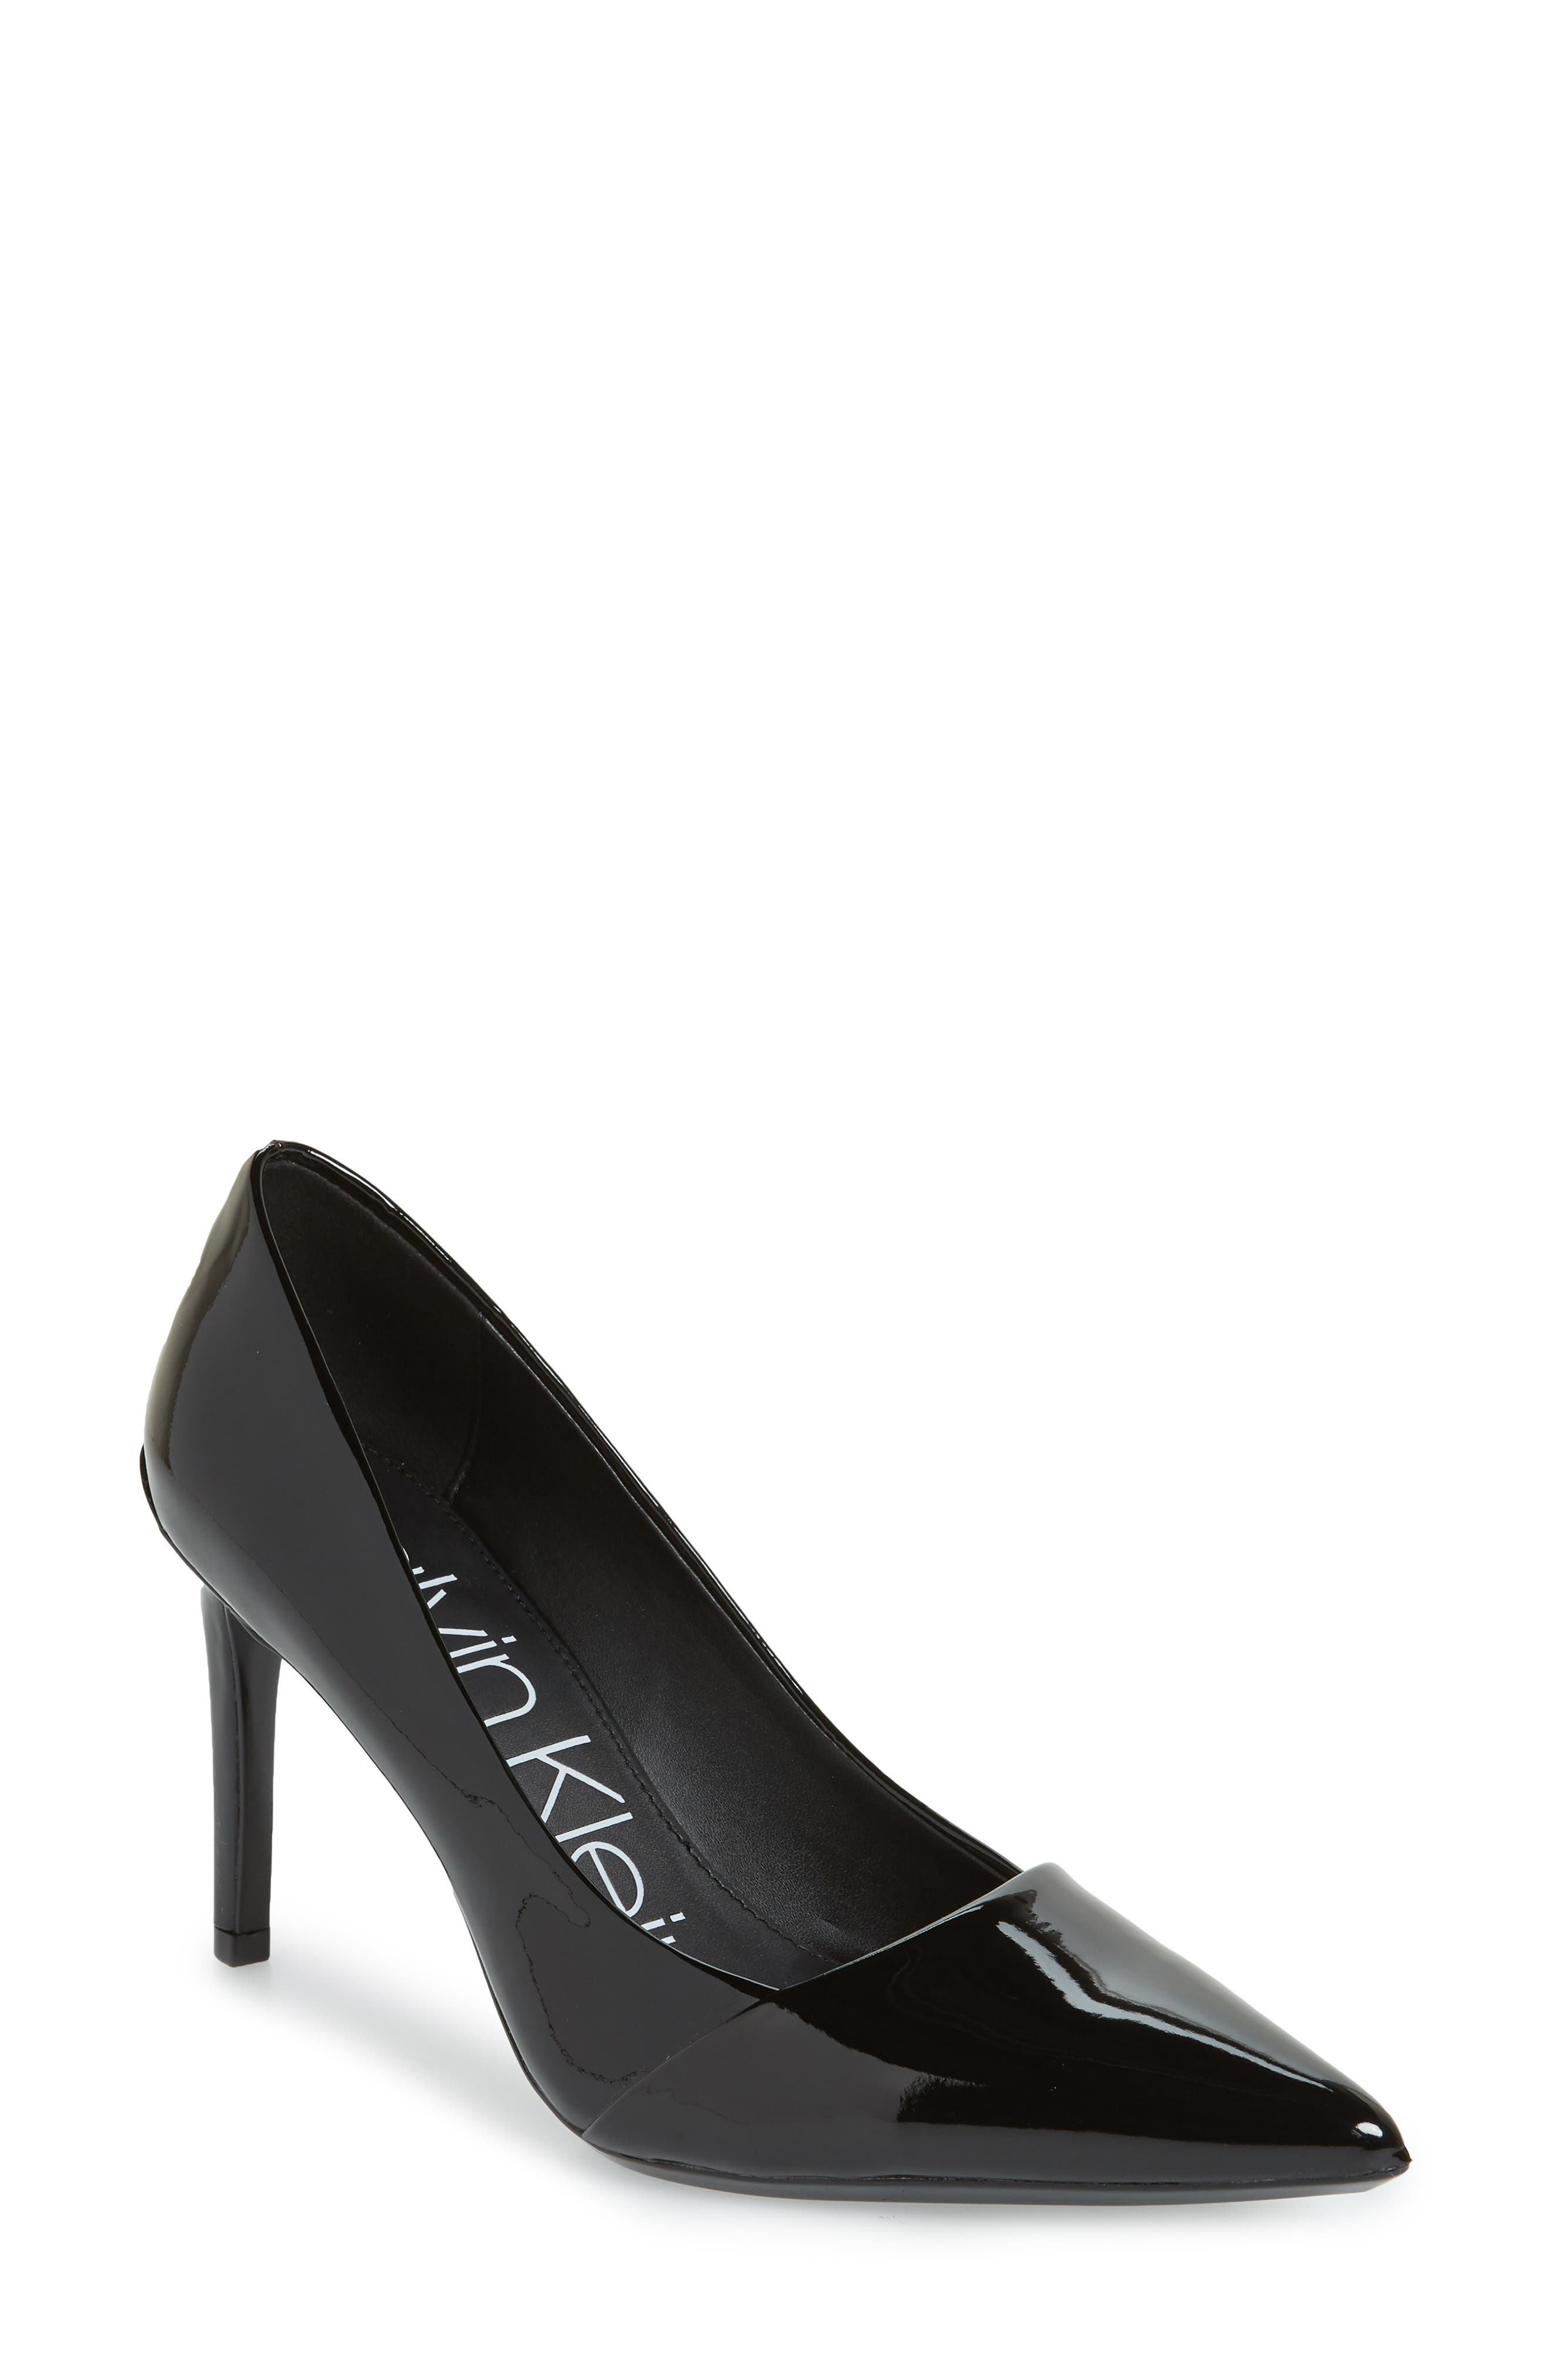 CALVIN KLEIN Roslyn Pointed Toe Pump, Main, color, BLACK PATENT LEATHER